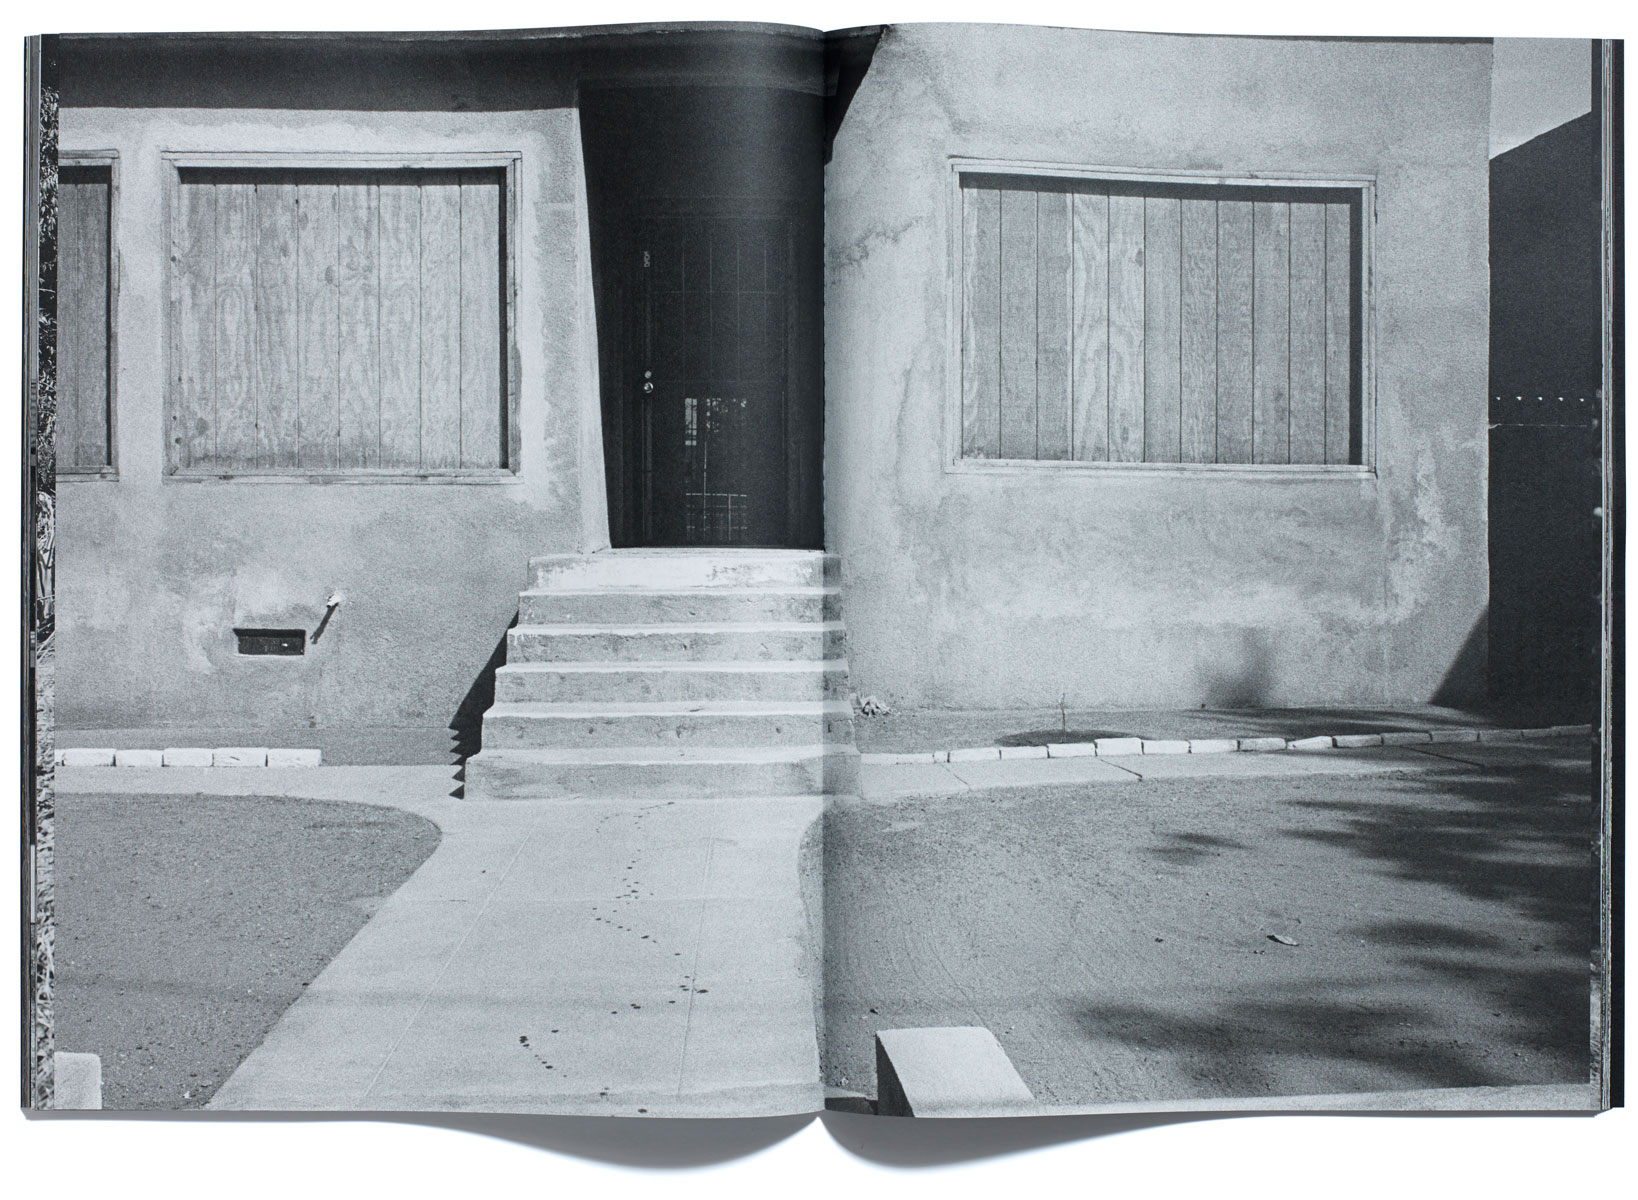 Foreclosures, Bruce Gilden, published by Browns Editions, designed by Browns Design